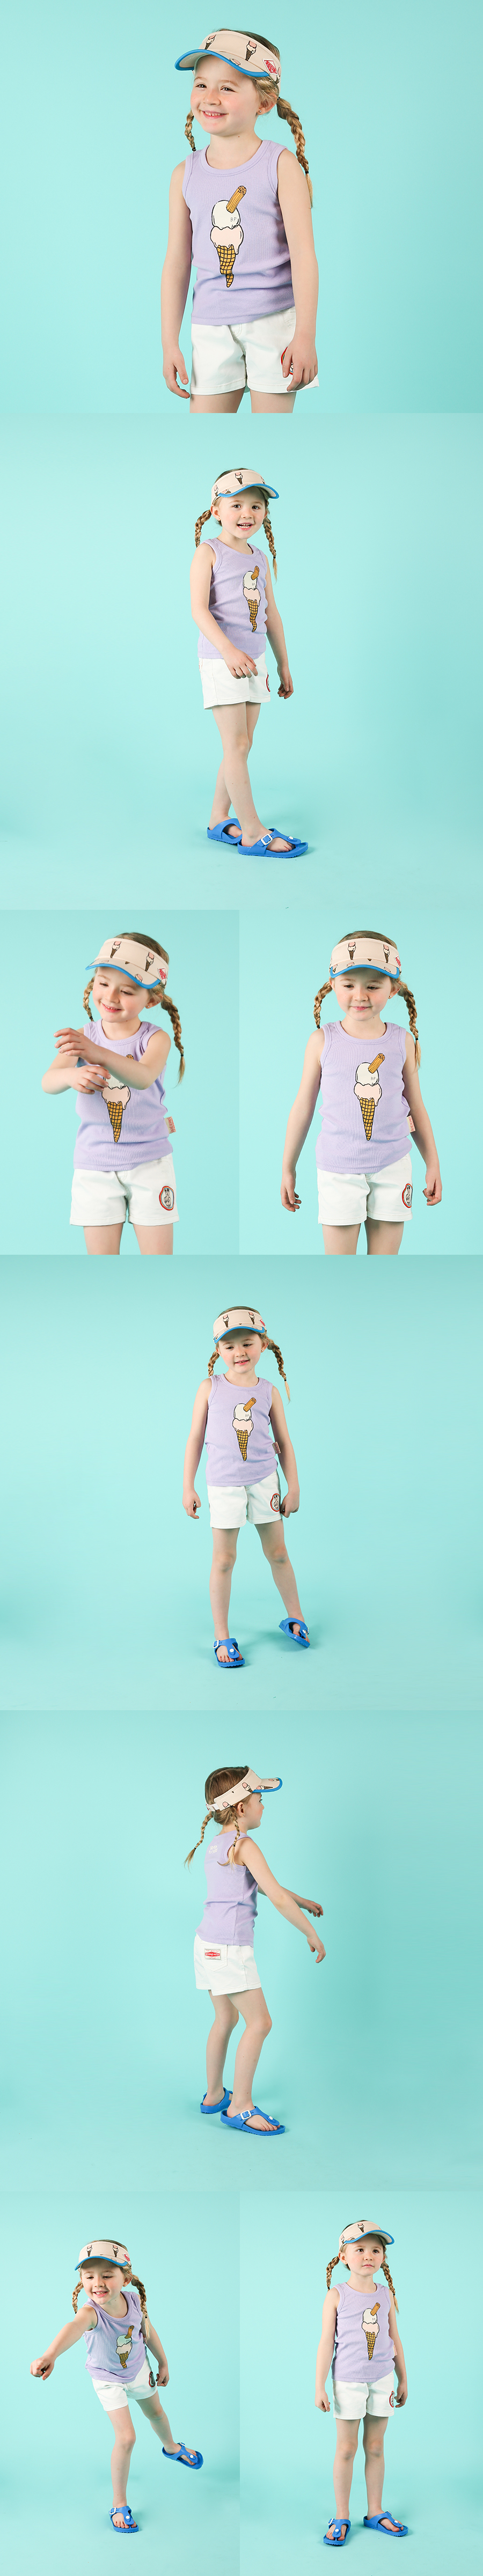 Ice cream cone tank top 상세 이미지